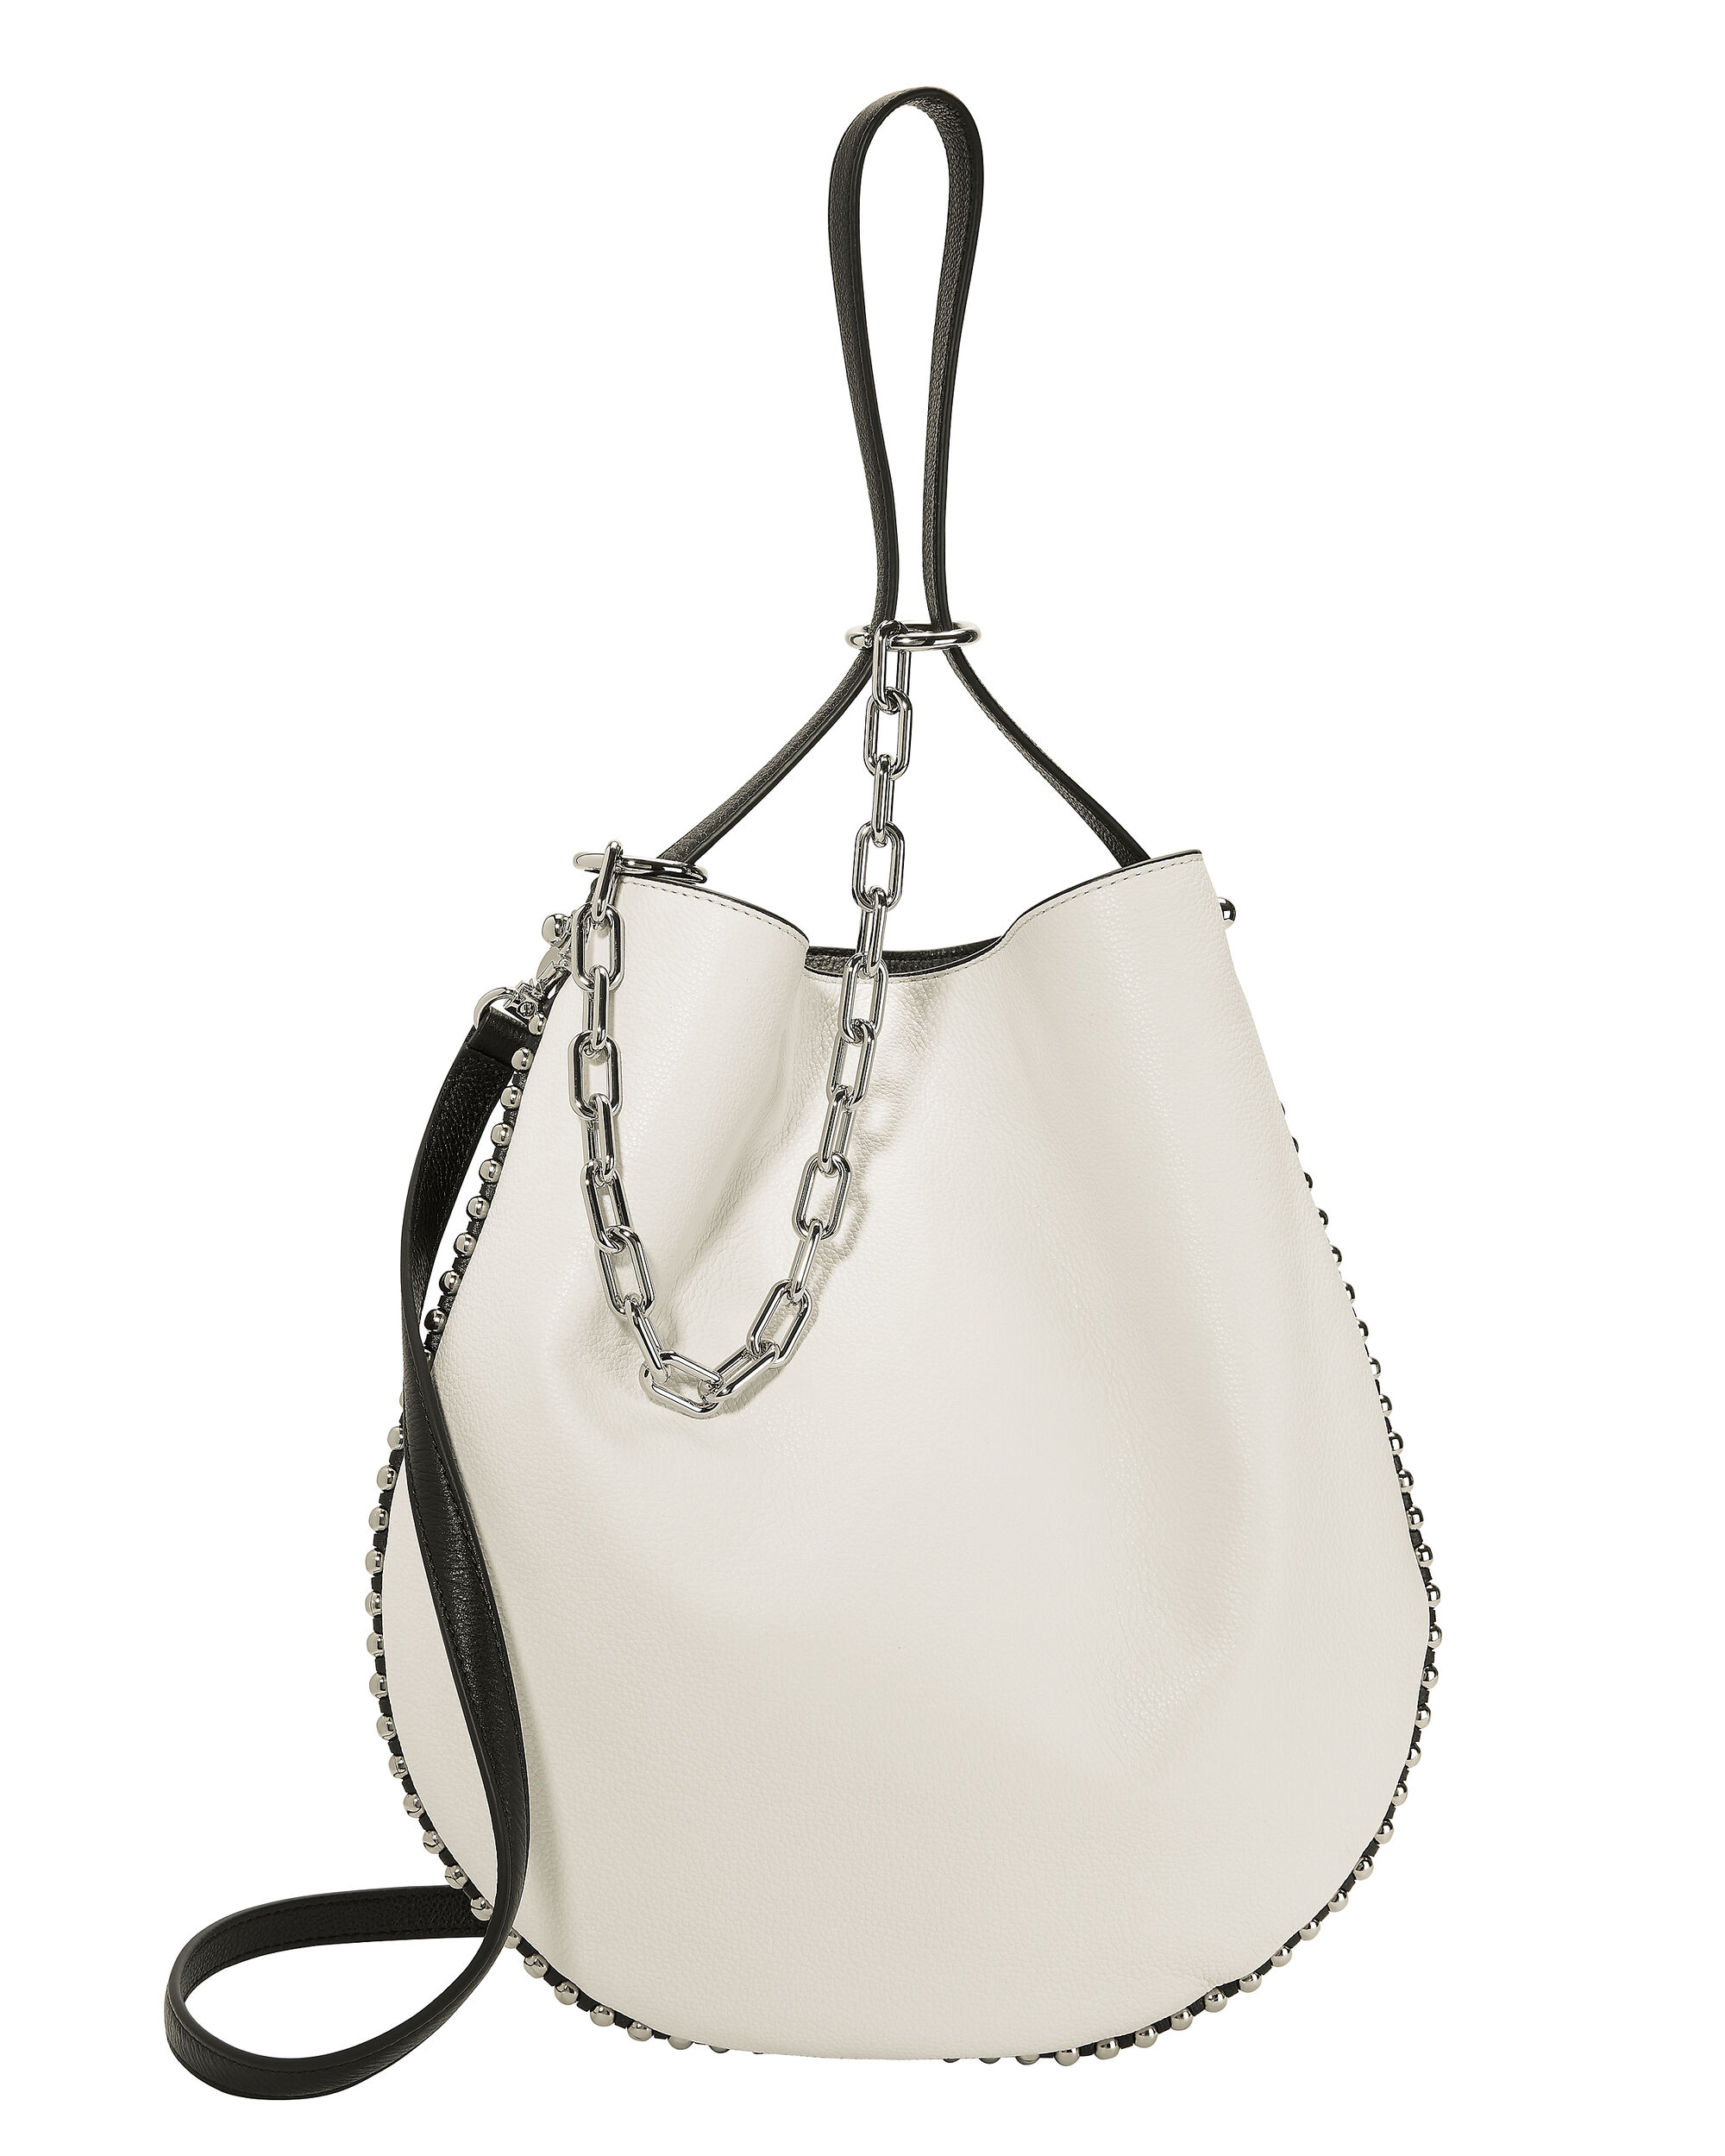 Roxy White Leather Hobo Shoulder Bag, WHITE, hi-res